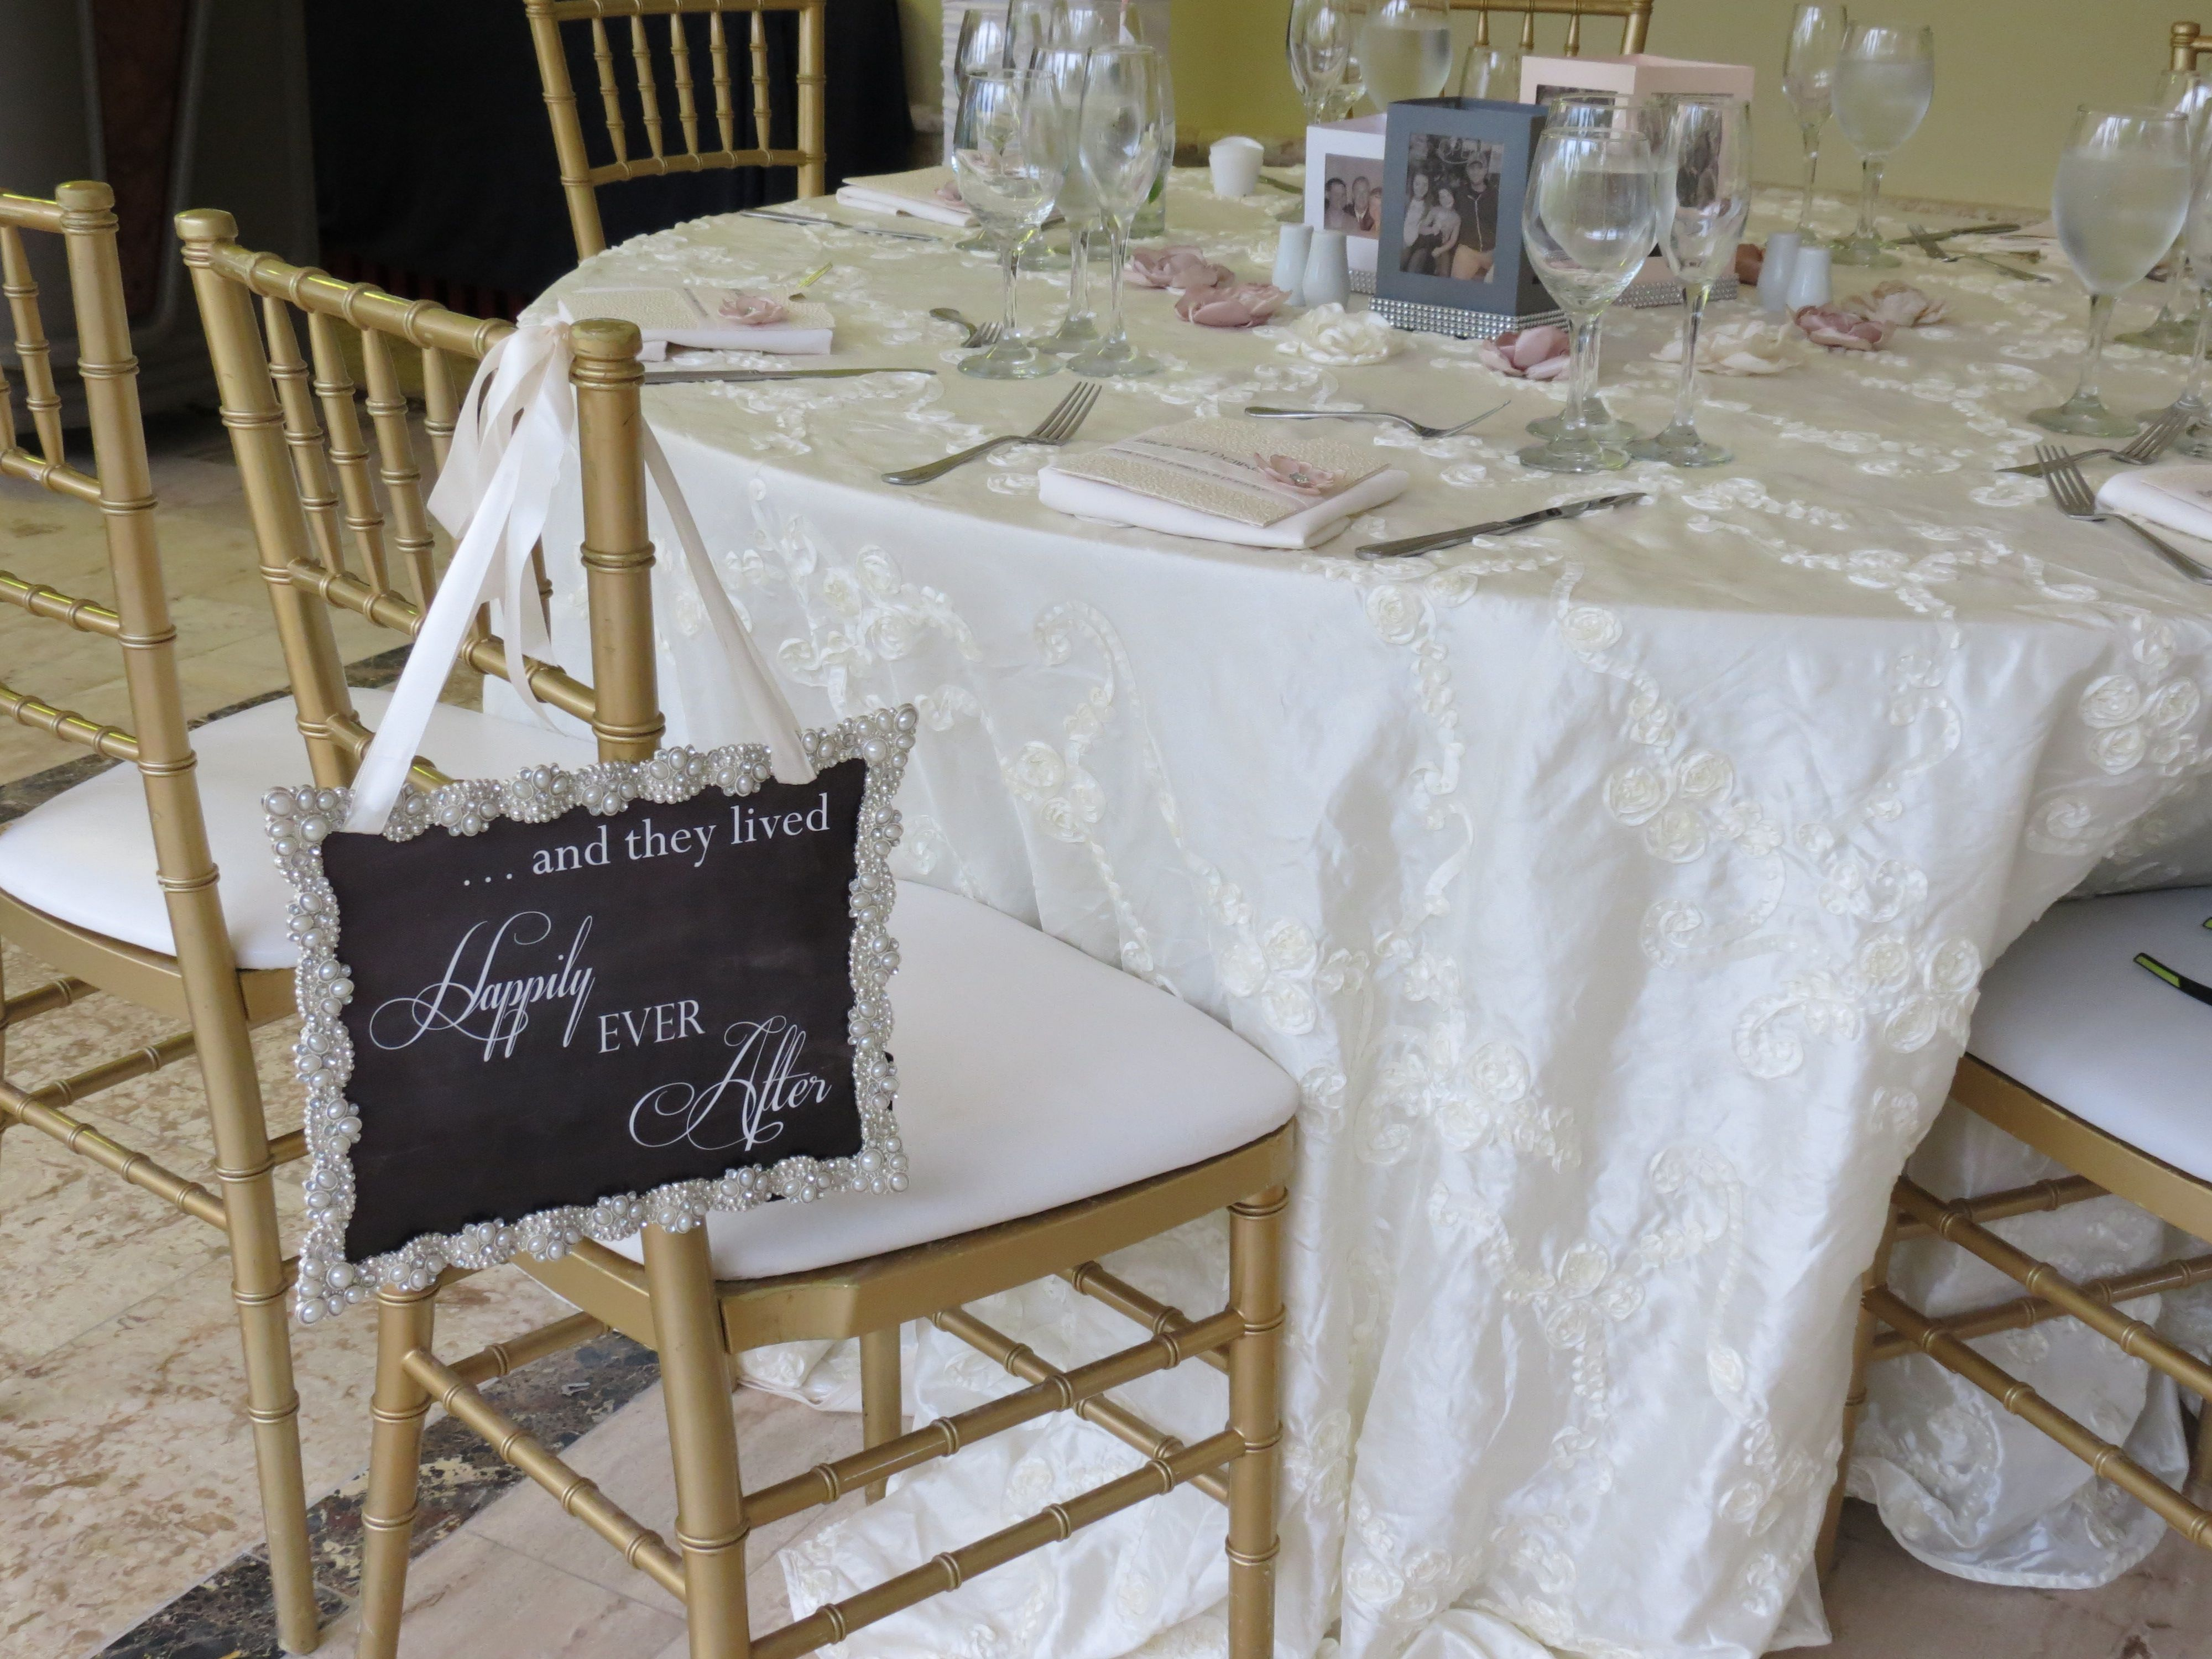 Paradisus Palma Real   Wedding Tablecloths And Chairs. We Had The Chill Out  Chic Package